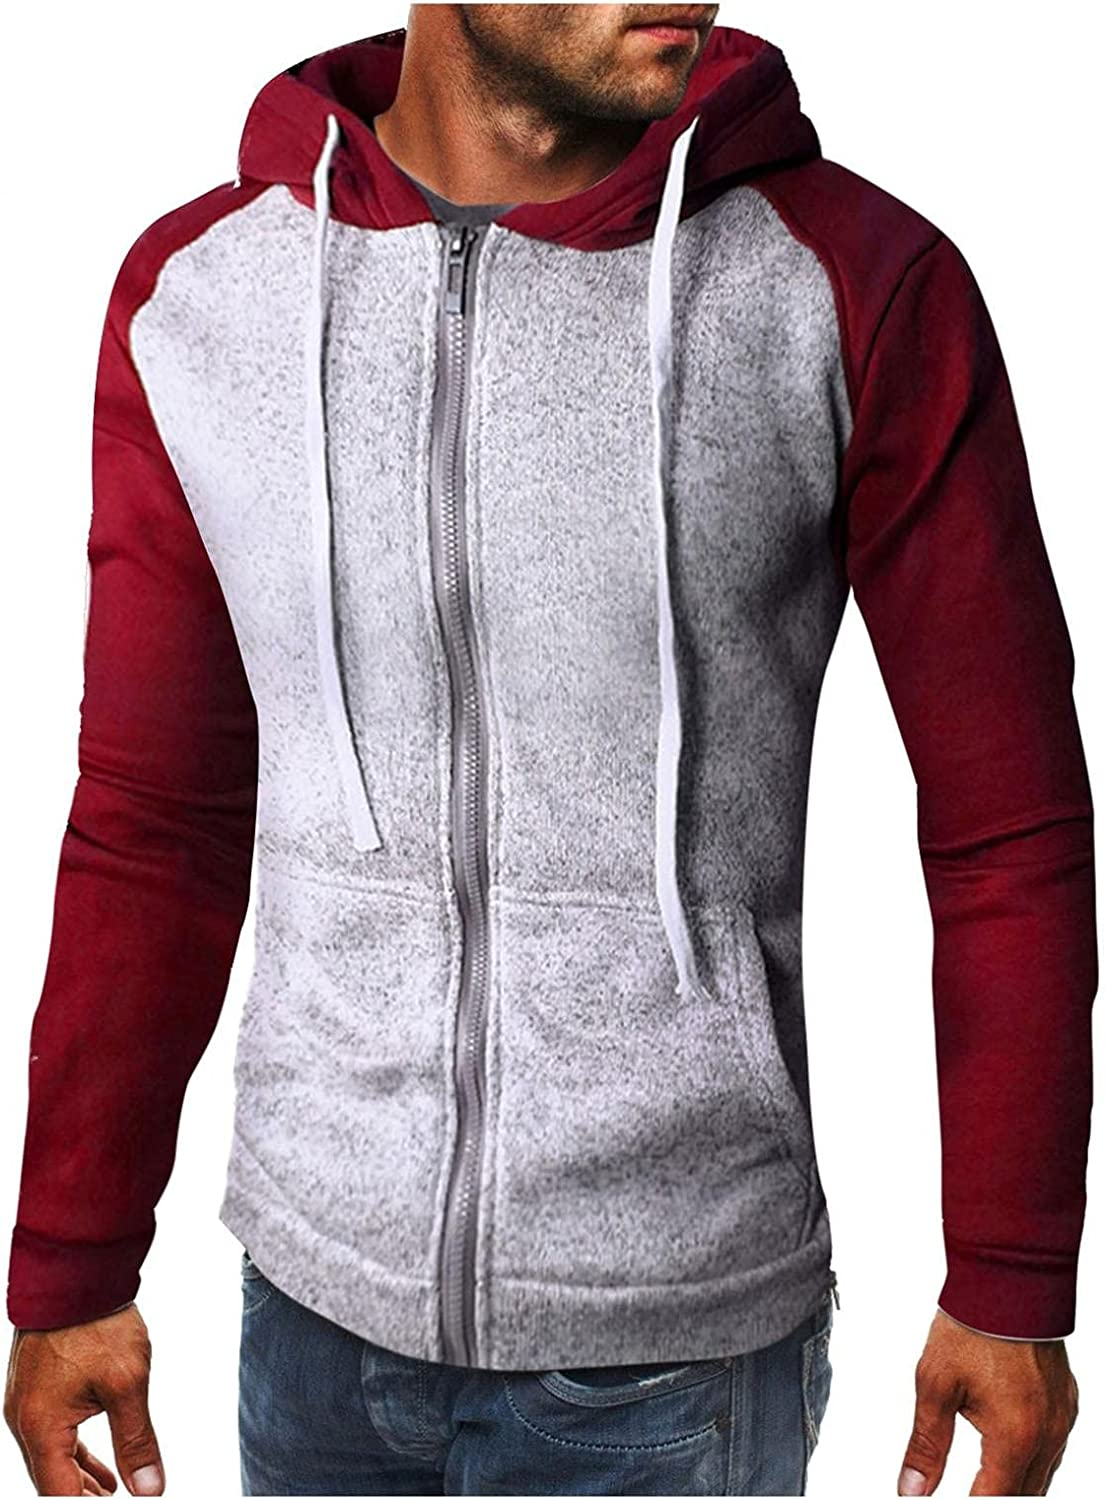 Men's Hoodie Full Zip Up Athletic Sweatshirt Casual Long Sleeve Stitching Color Drawstring Tops Fall Coats Gym Hooded